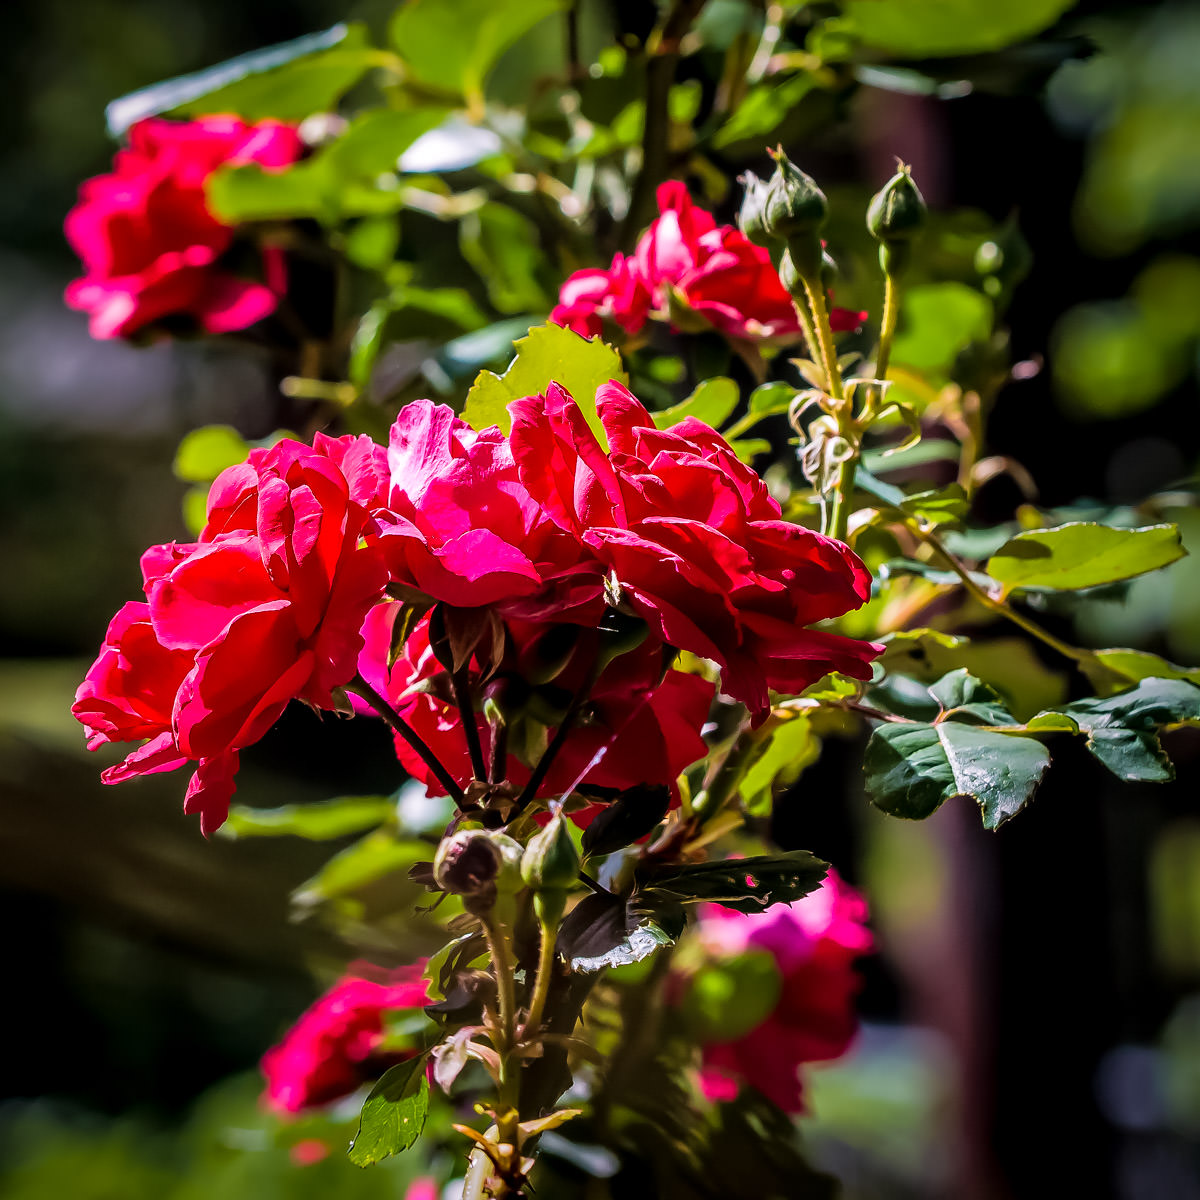 """Roses, apropos of its nickname of """"The Rose City"""", spotted in Tyler, Texas."""